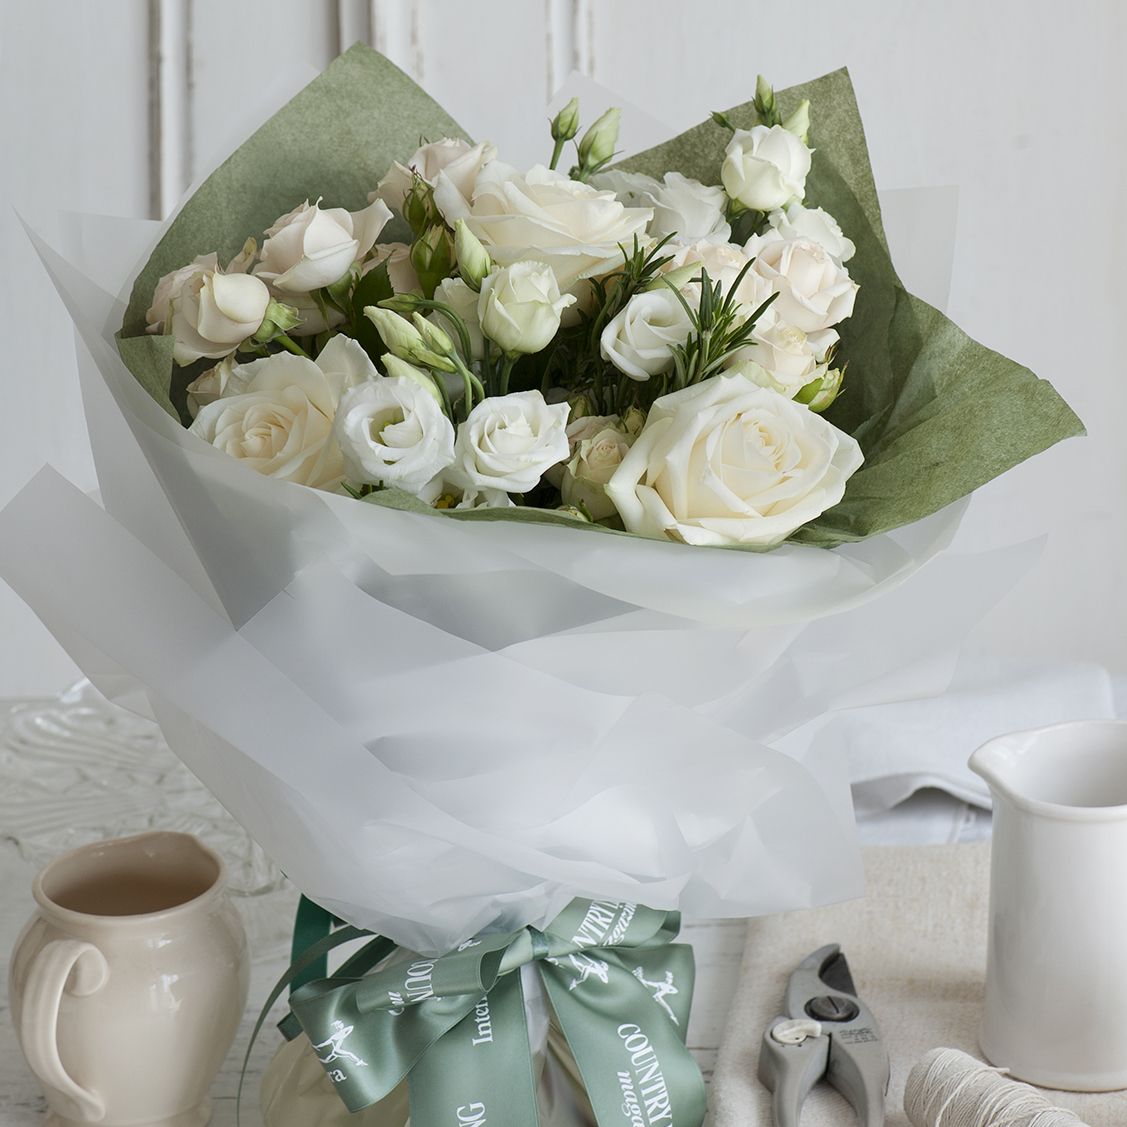 The country living interflora bouquet collection for Country living magazine uk recipes